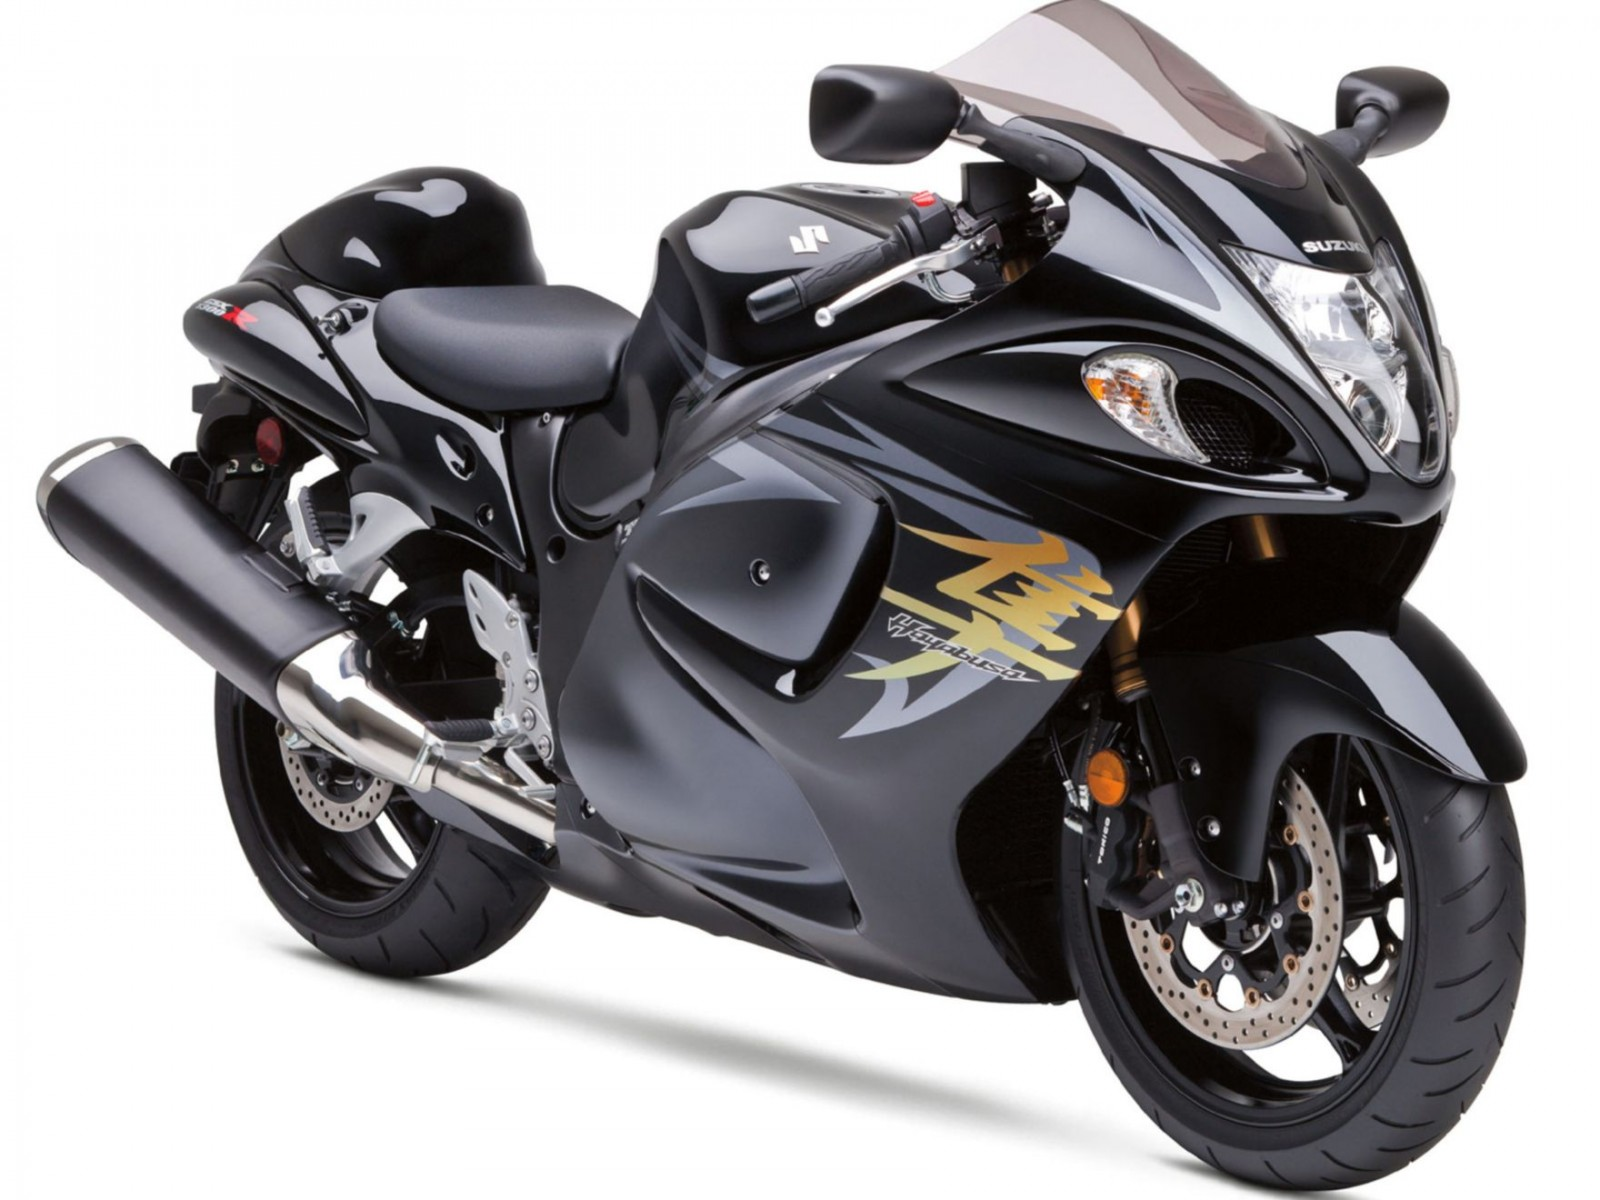 2009 Suzuki Hayabusa GSX 1300 R Normal Wallpaper